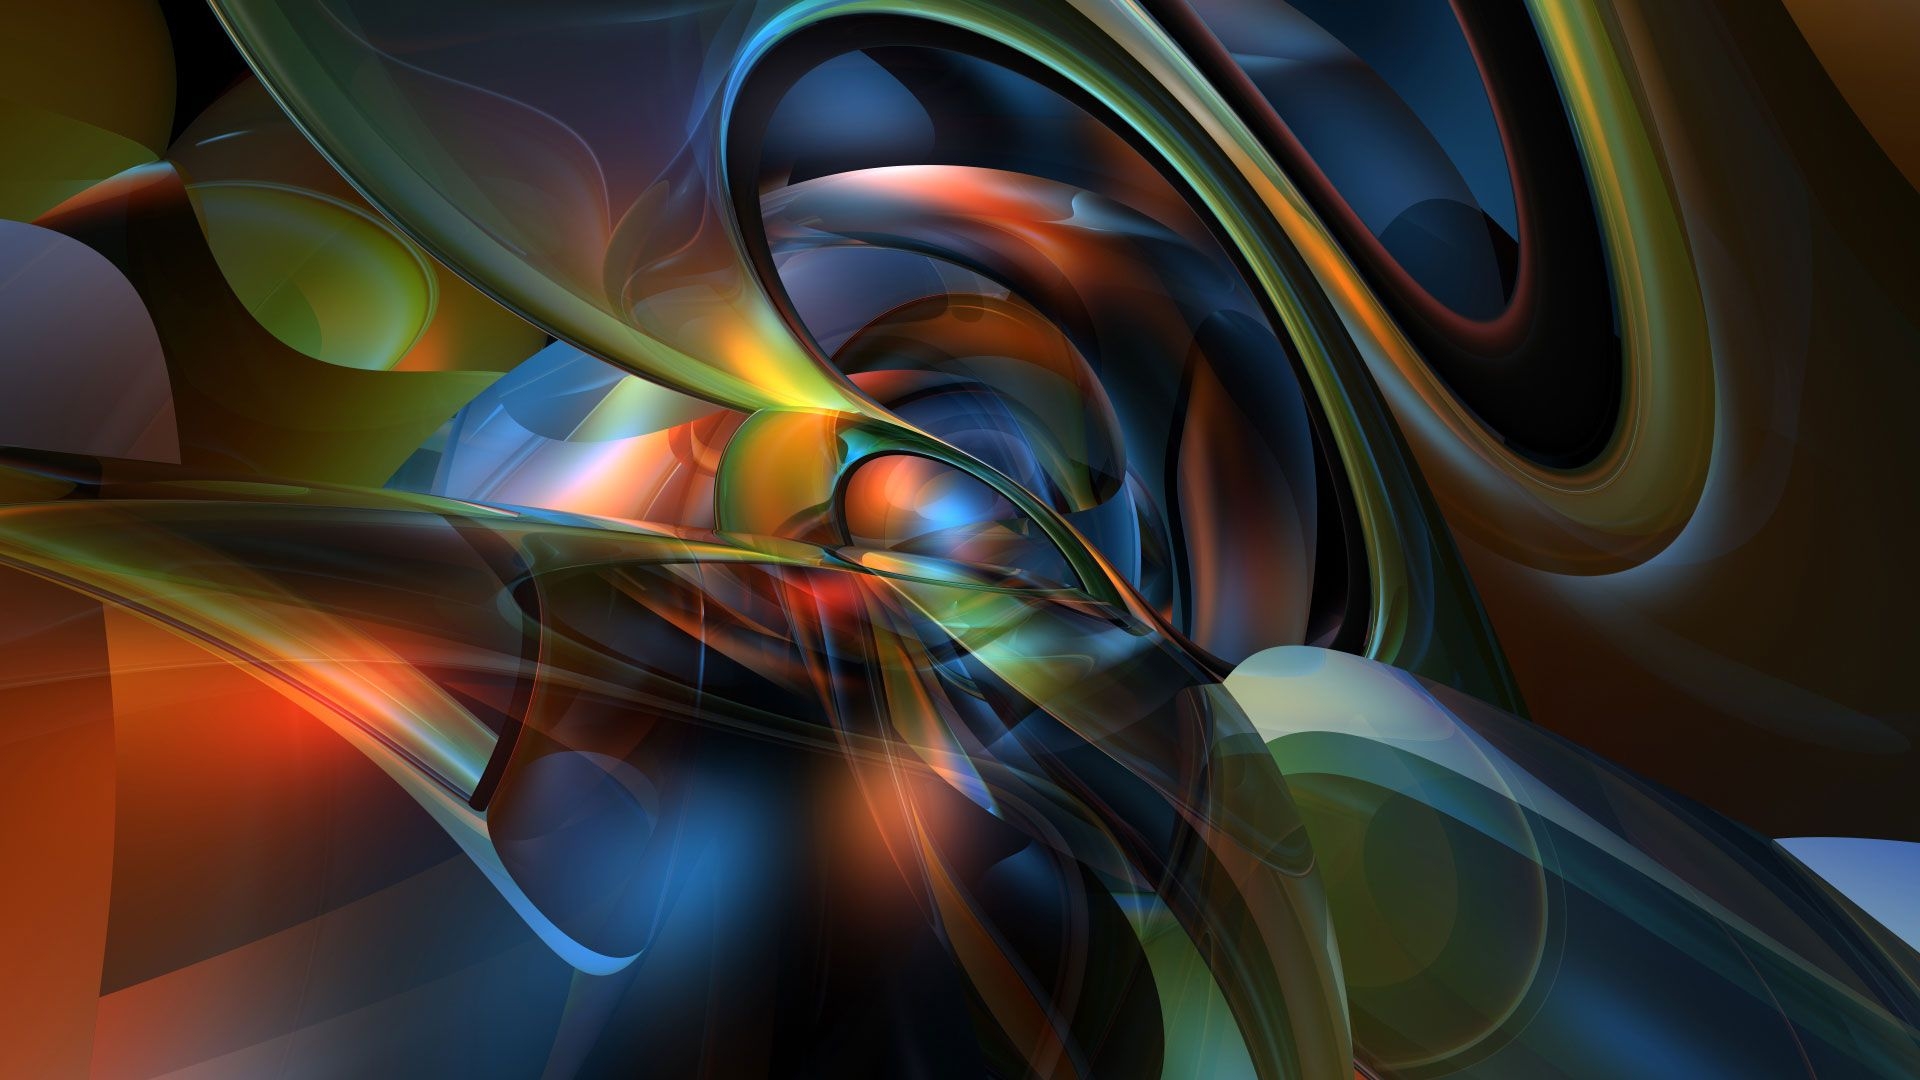 1920x1080 Free download Abstract Designs Wallpapers HD Wallpapers ...